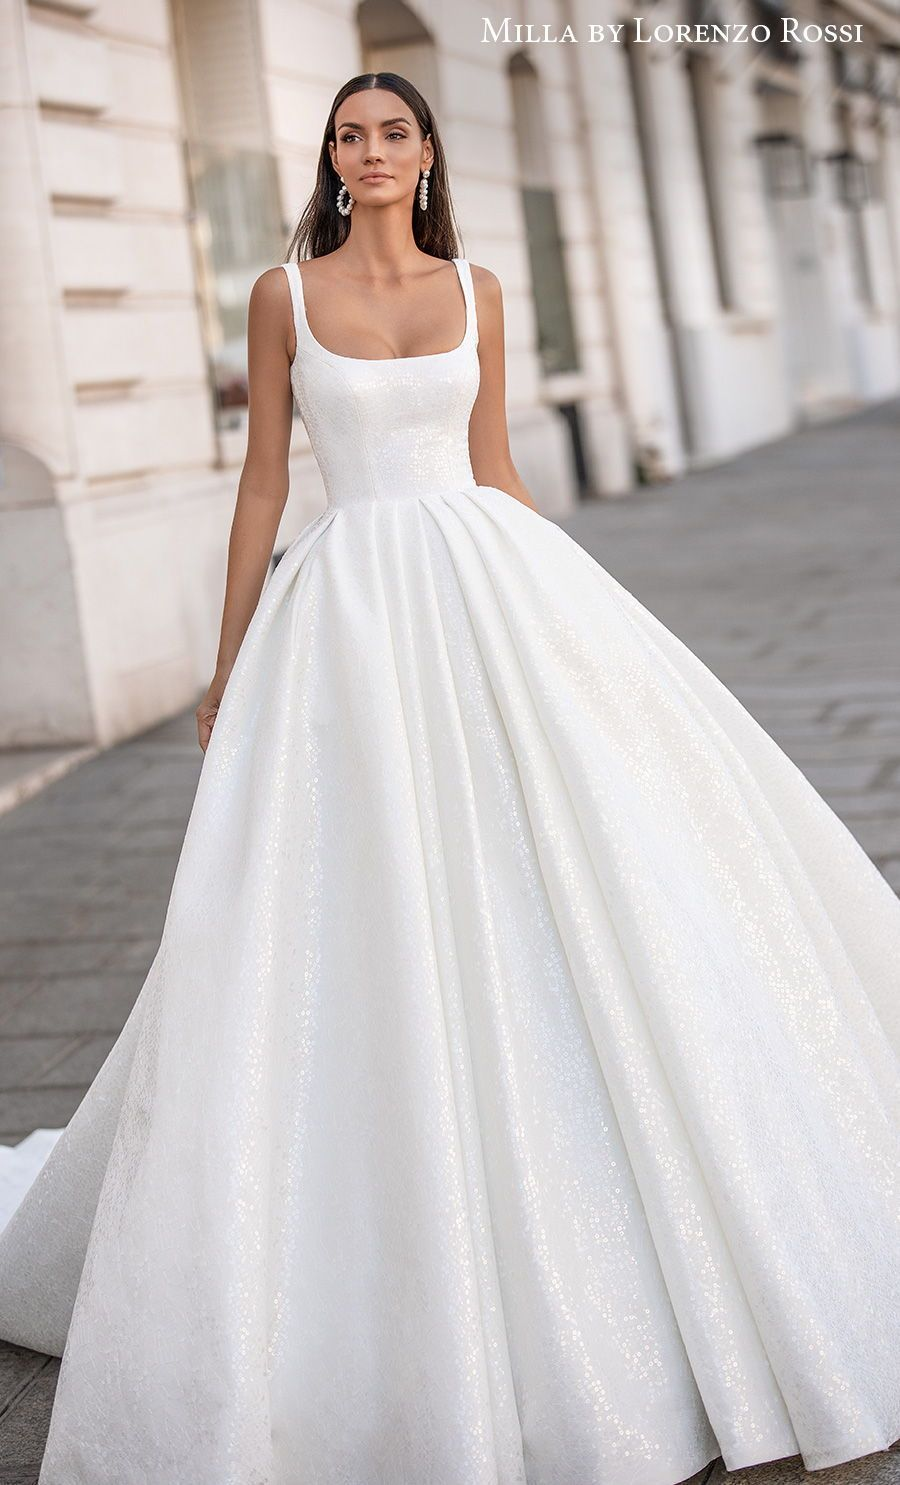 """Milla By Lorenzo Rossi Wedding Dresses for Every Bride — 2020/2021 """"Paris"""" Bridal Collection 